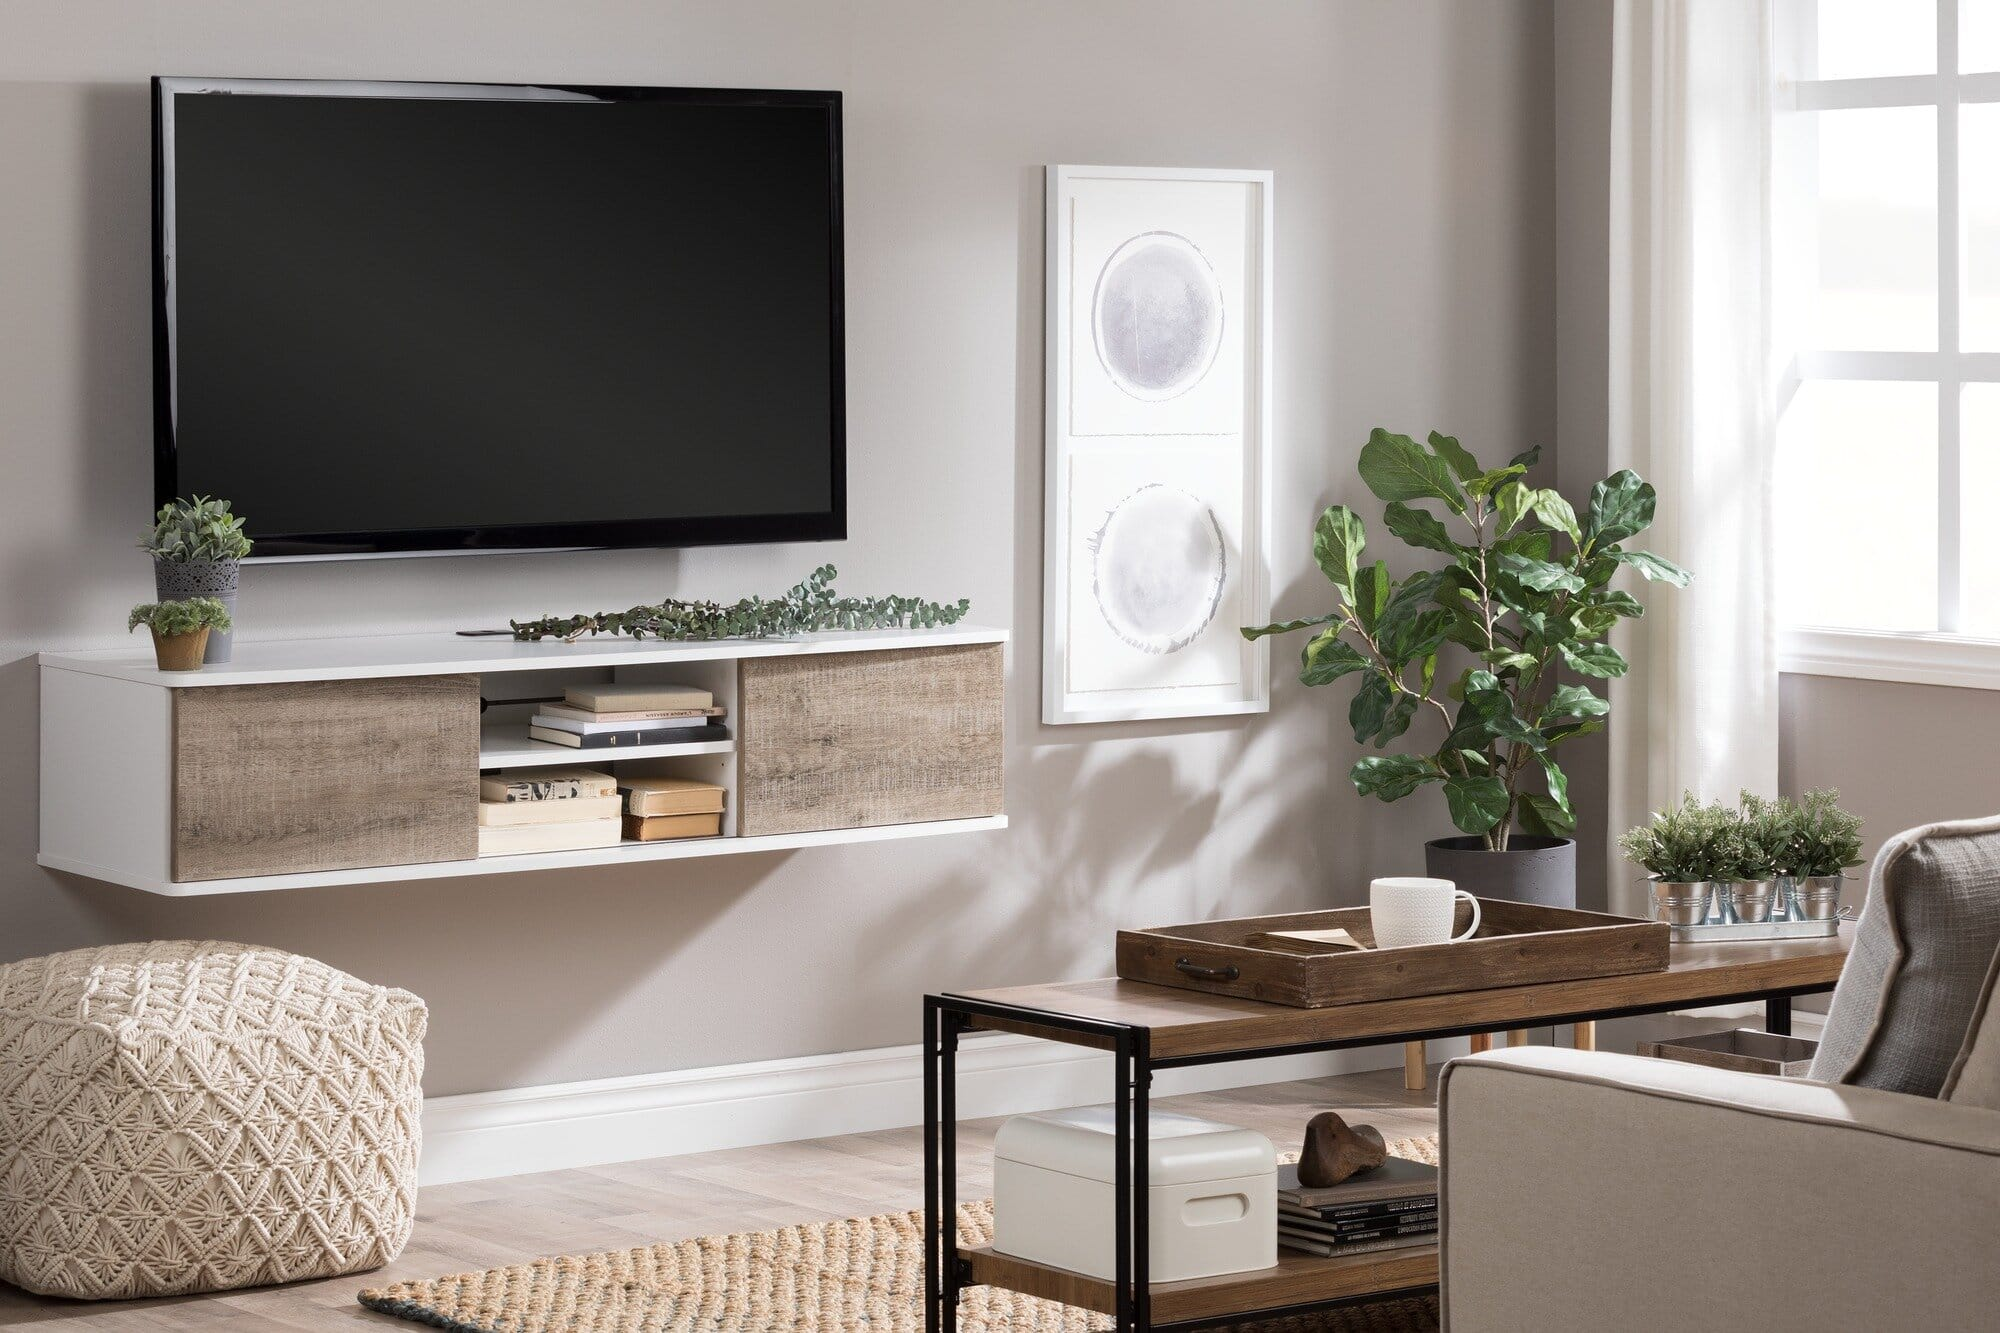 12 Stylish Ideas For Decorating Around A Tv Set Tlc Interiors